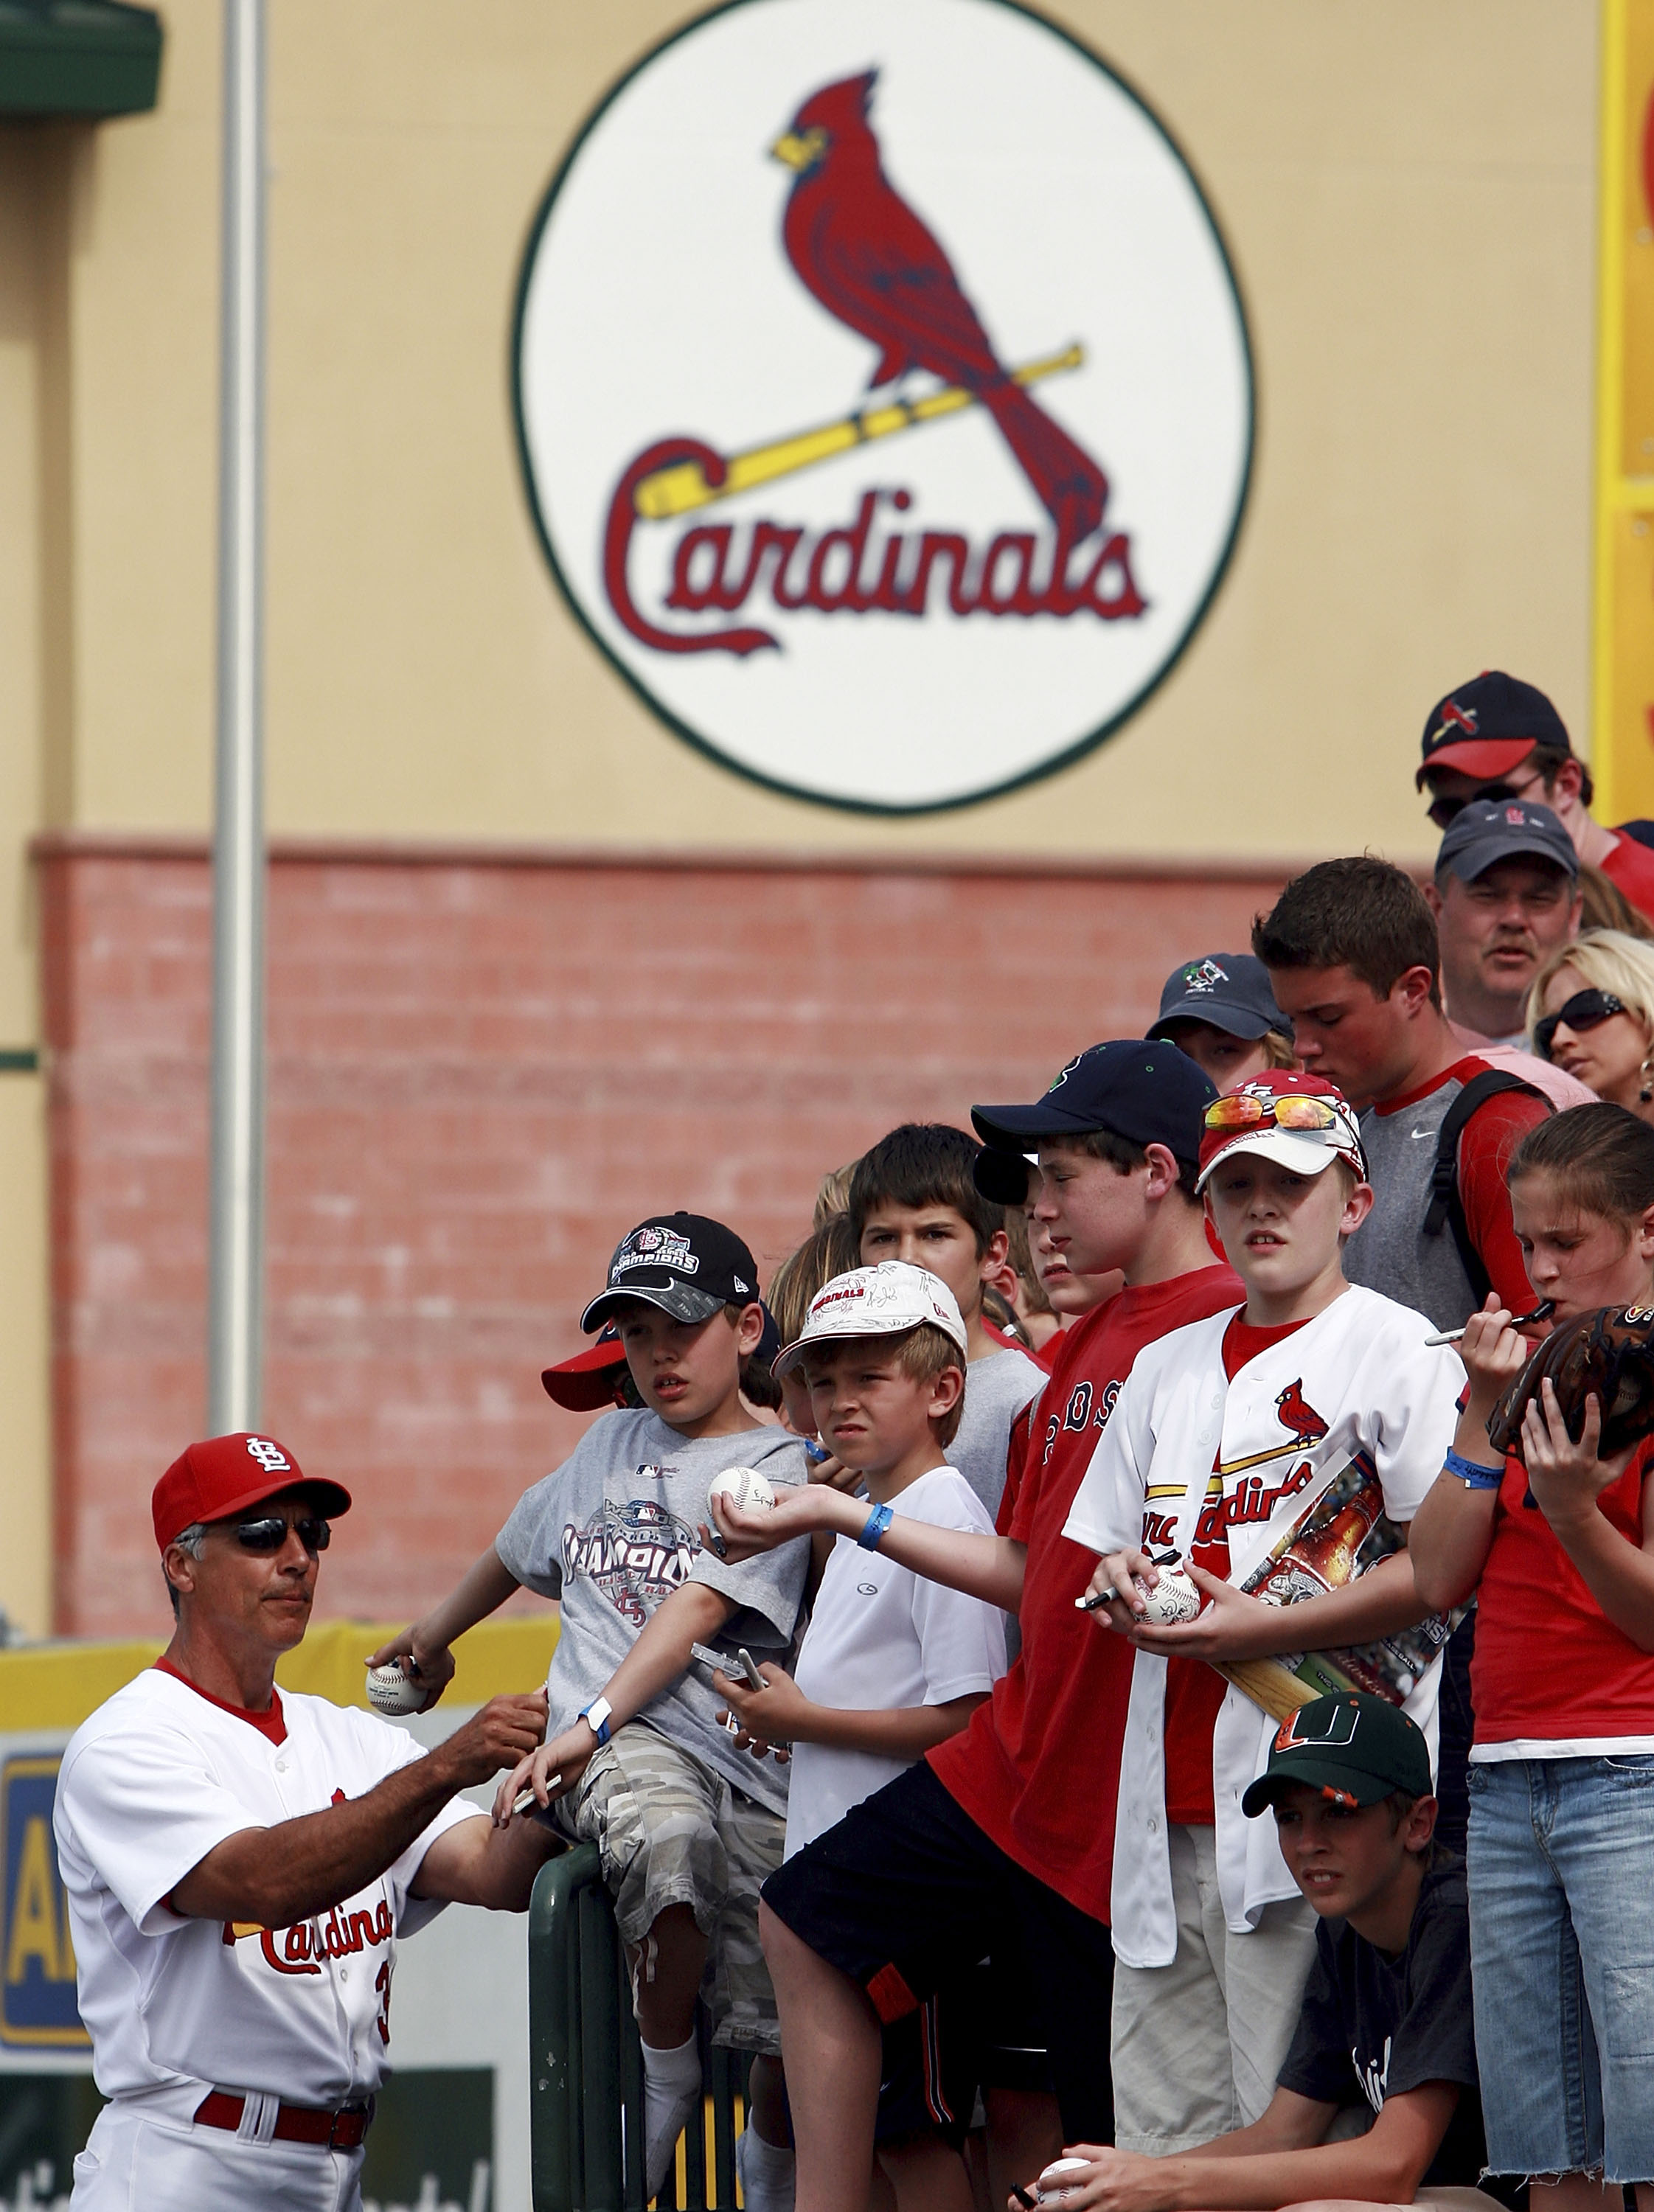 JUPITER, FL - MARCH 14:  Coach Dave McKay #39 of the St. Louis Cardinals signs autographs as fans look for the next player to leave the field after playing the Washington Nationals on March 14, 2007 at Roger Dean Stadium in Jupiter, Florida. The Nationals